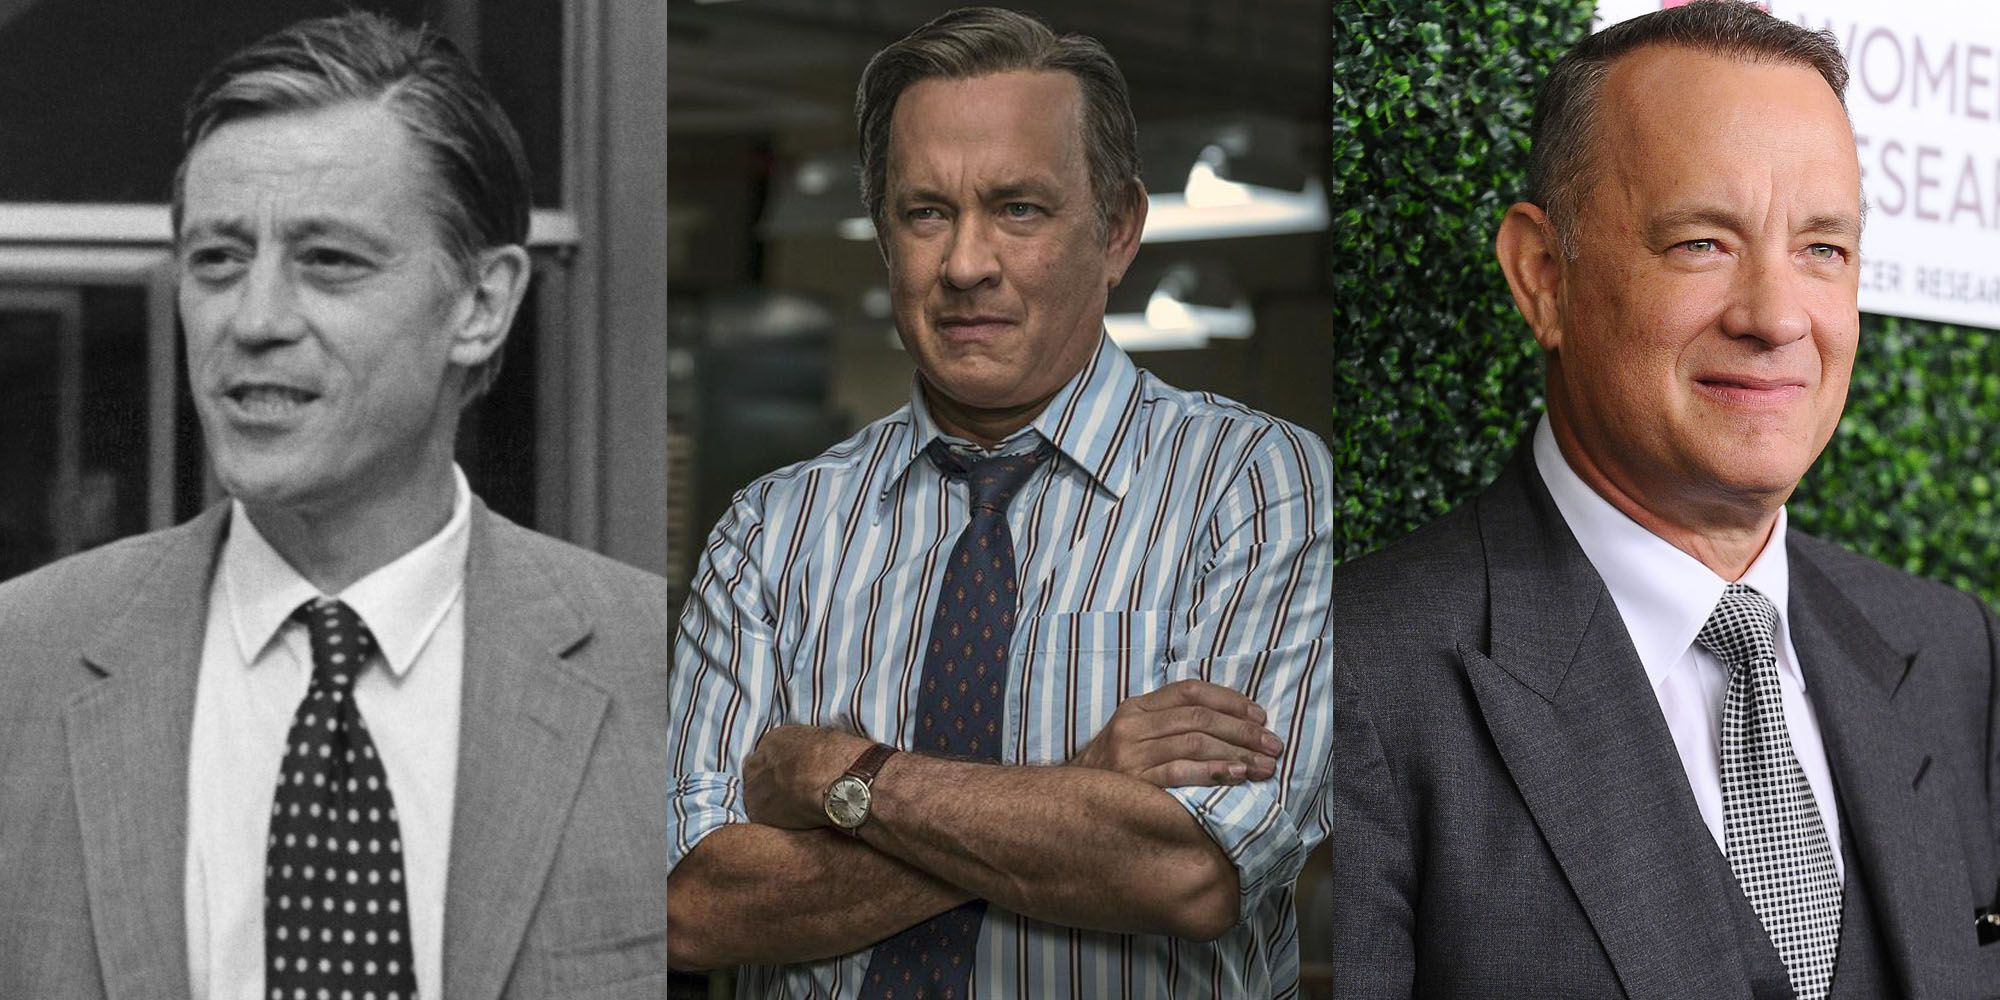 What movie stars and others are depicted in these photos